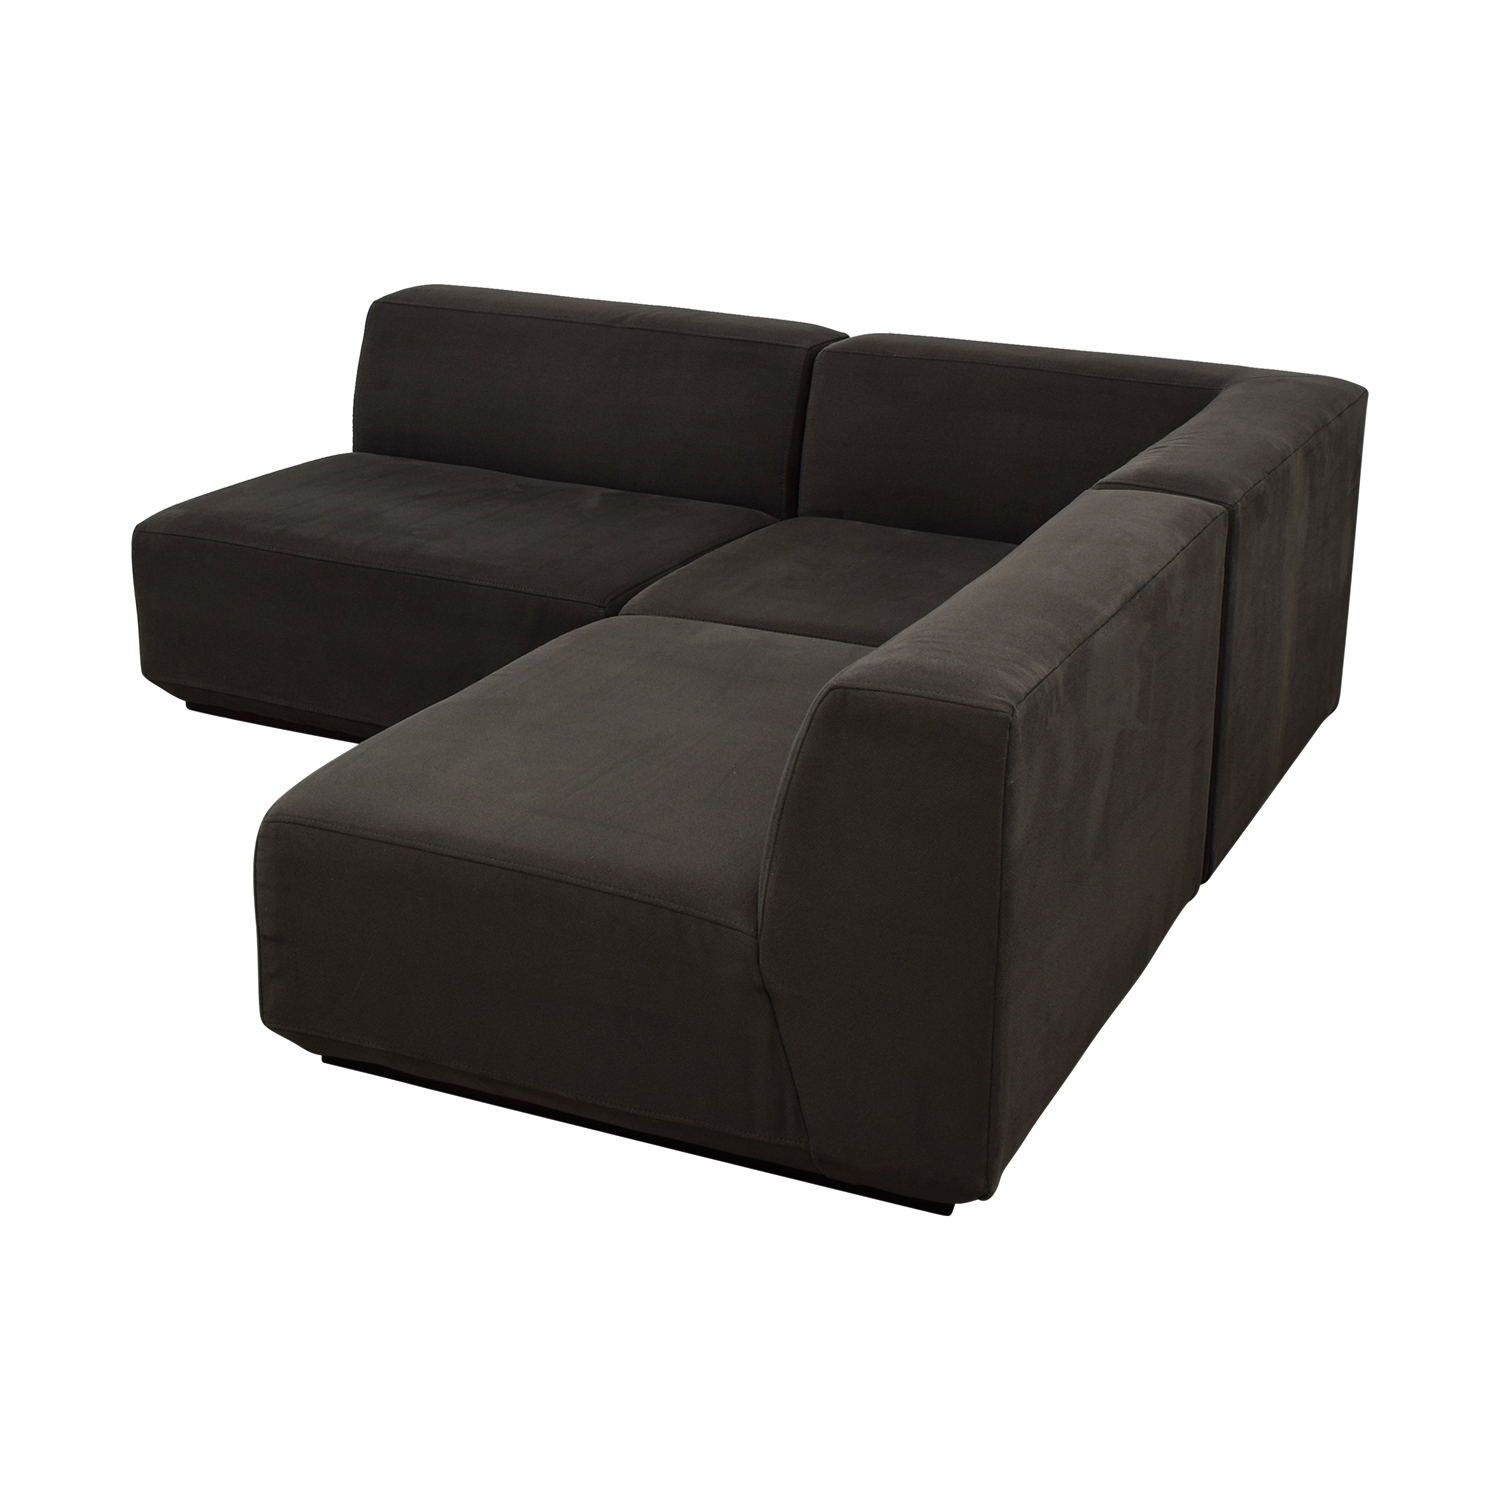 West Elm West Elm Three Piece Sectional Sofa for sale